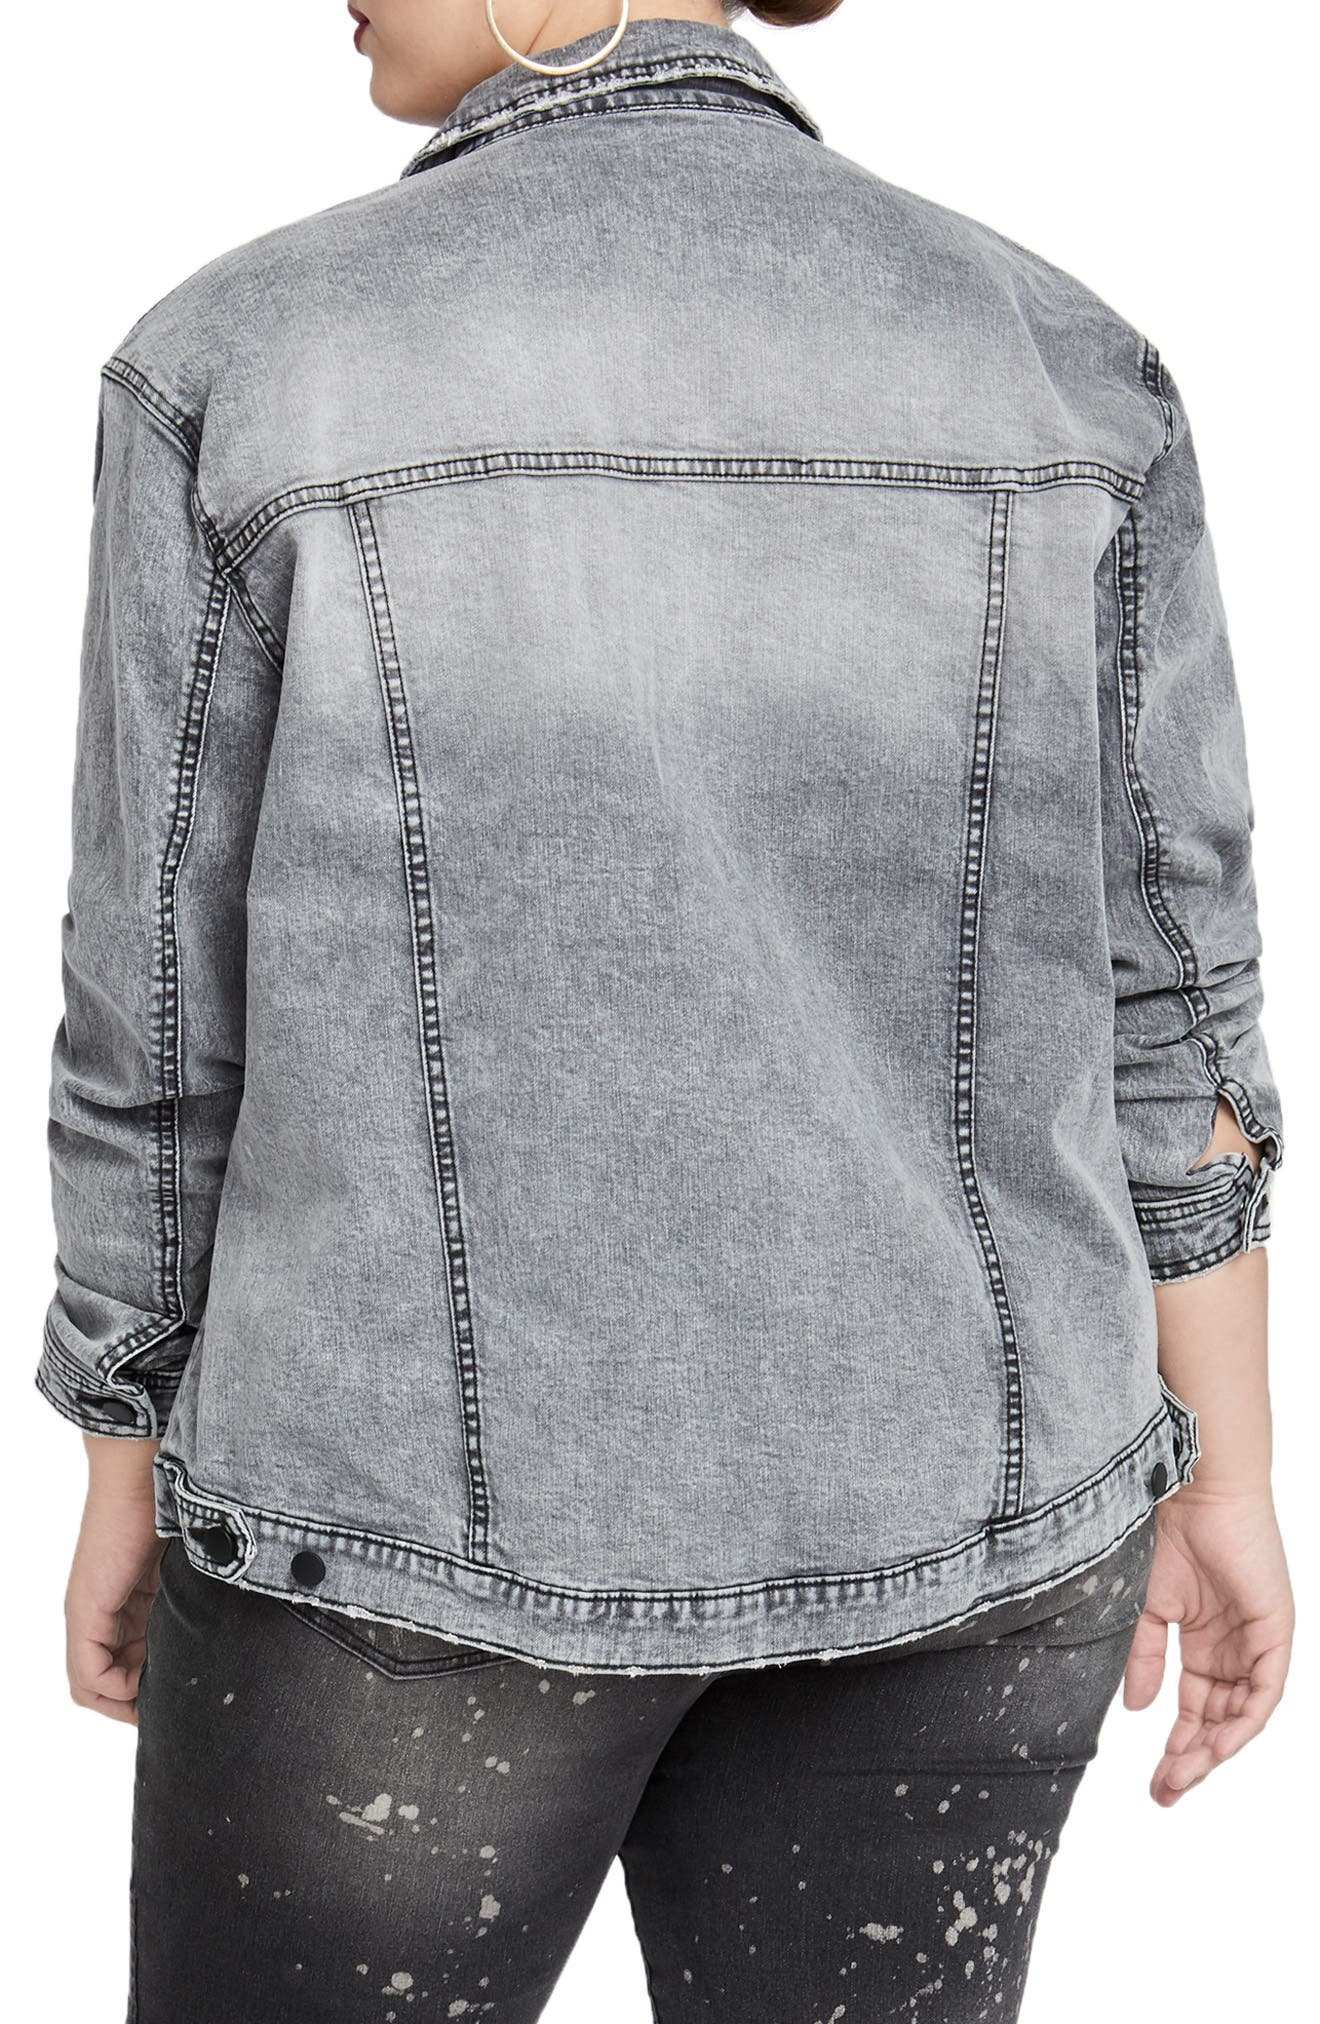 Oversize Denim Jacket,                             Alternate thumbnail 2, color,                             031